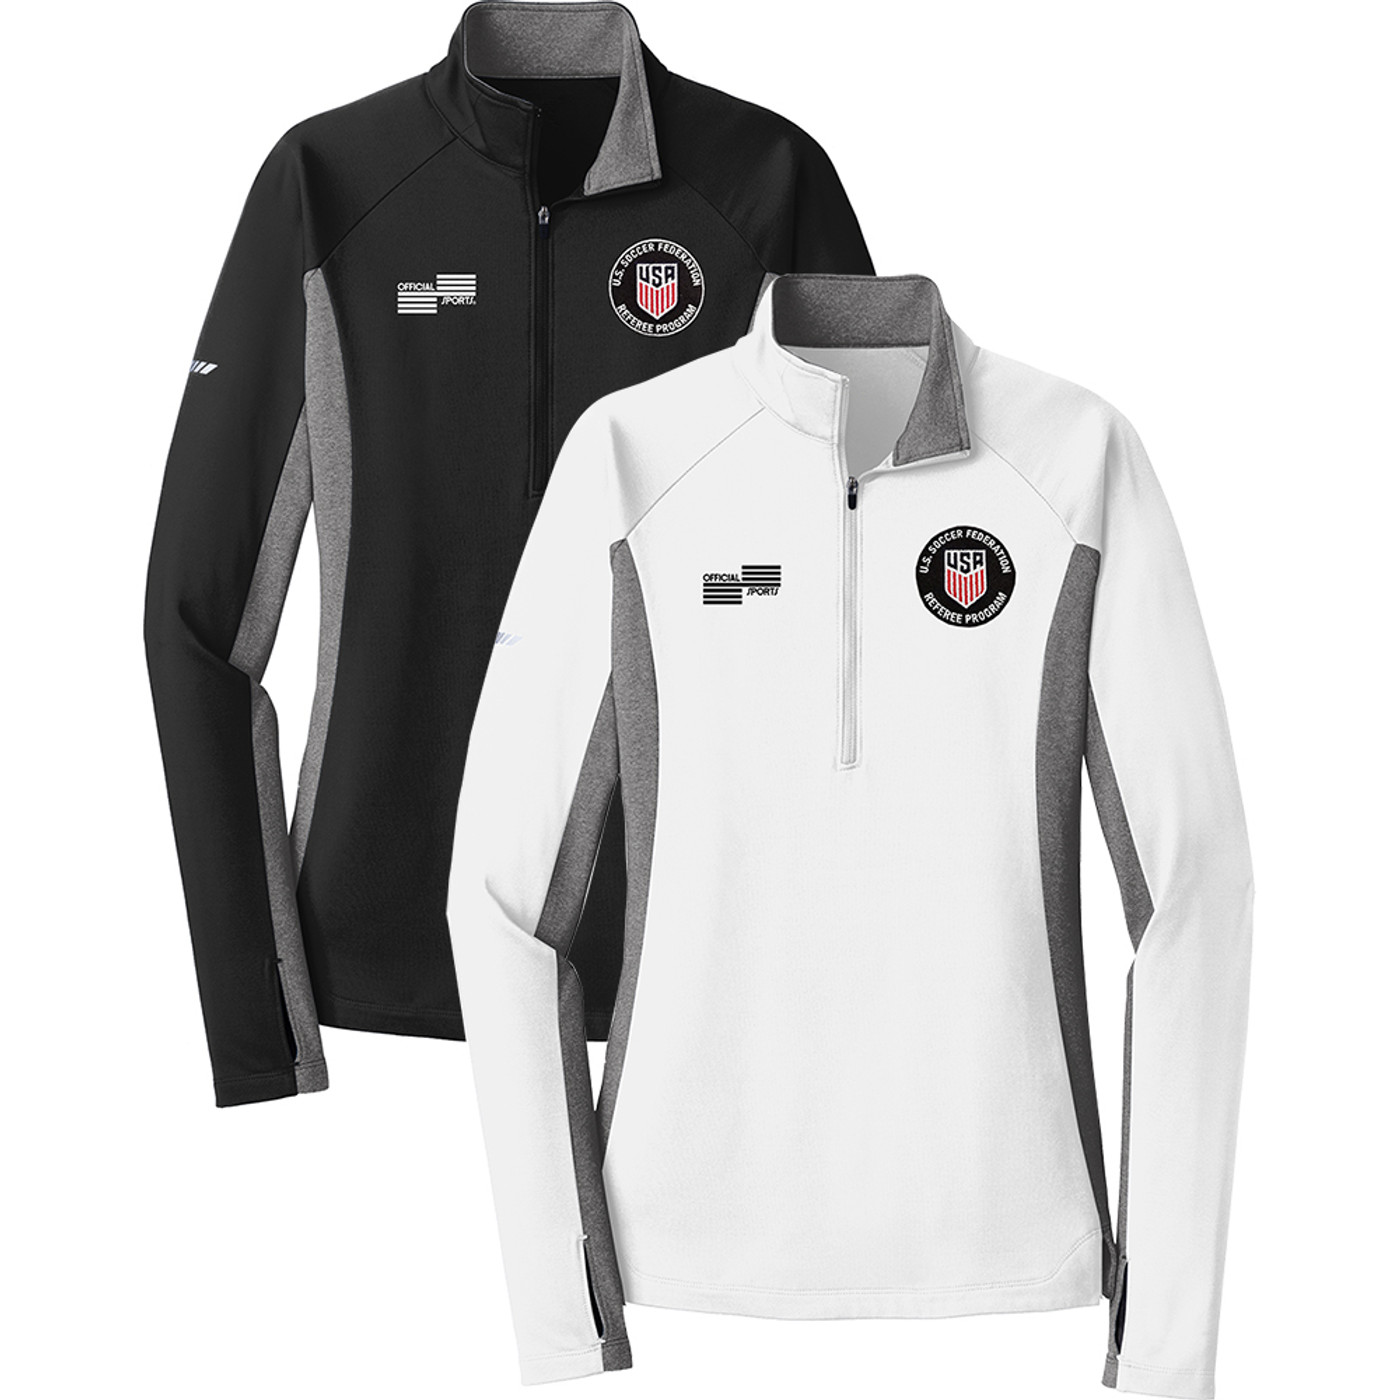 W2318CL USSF Midweight 1/4 Zip Pullover